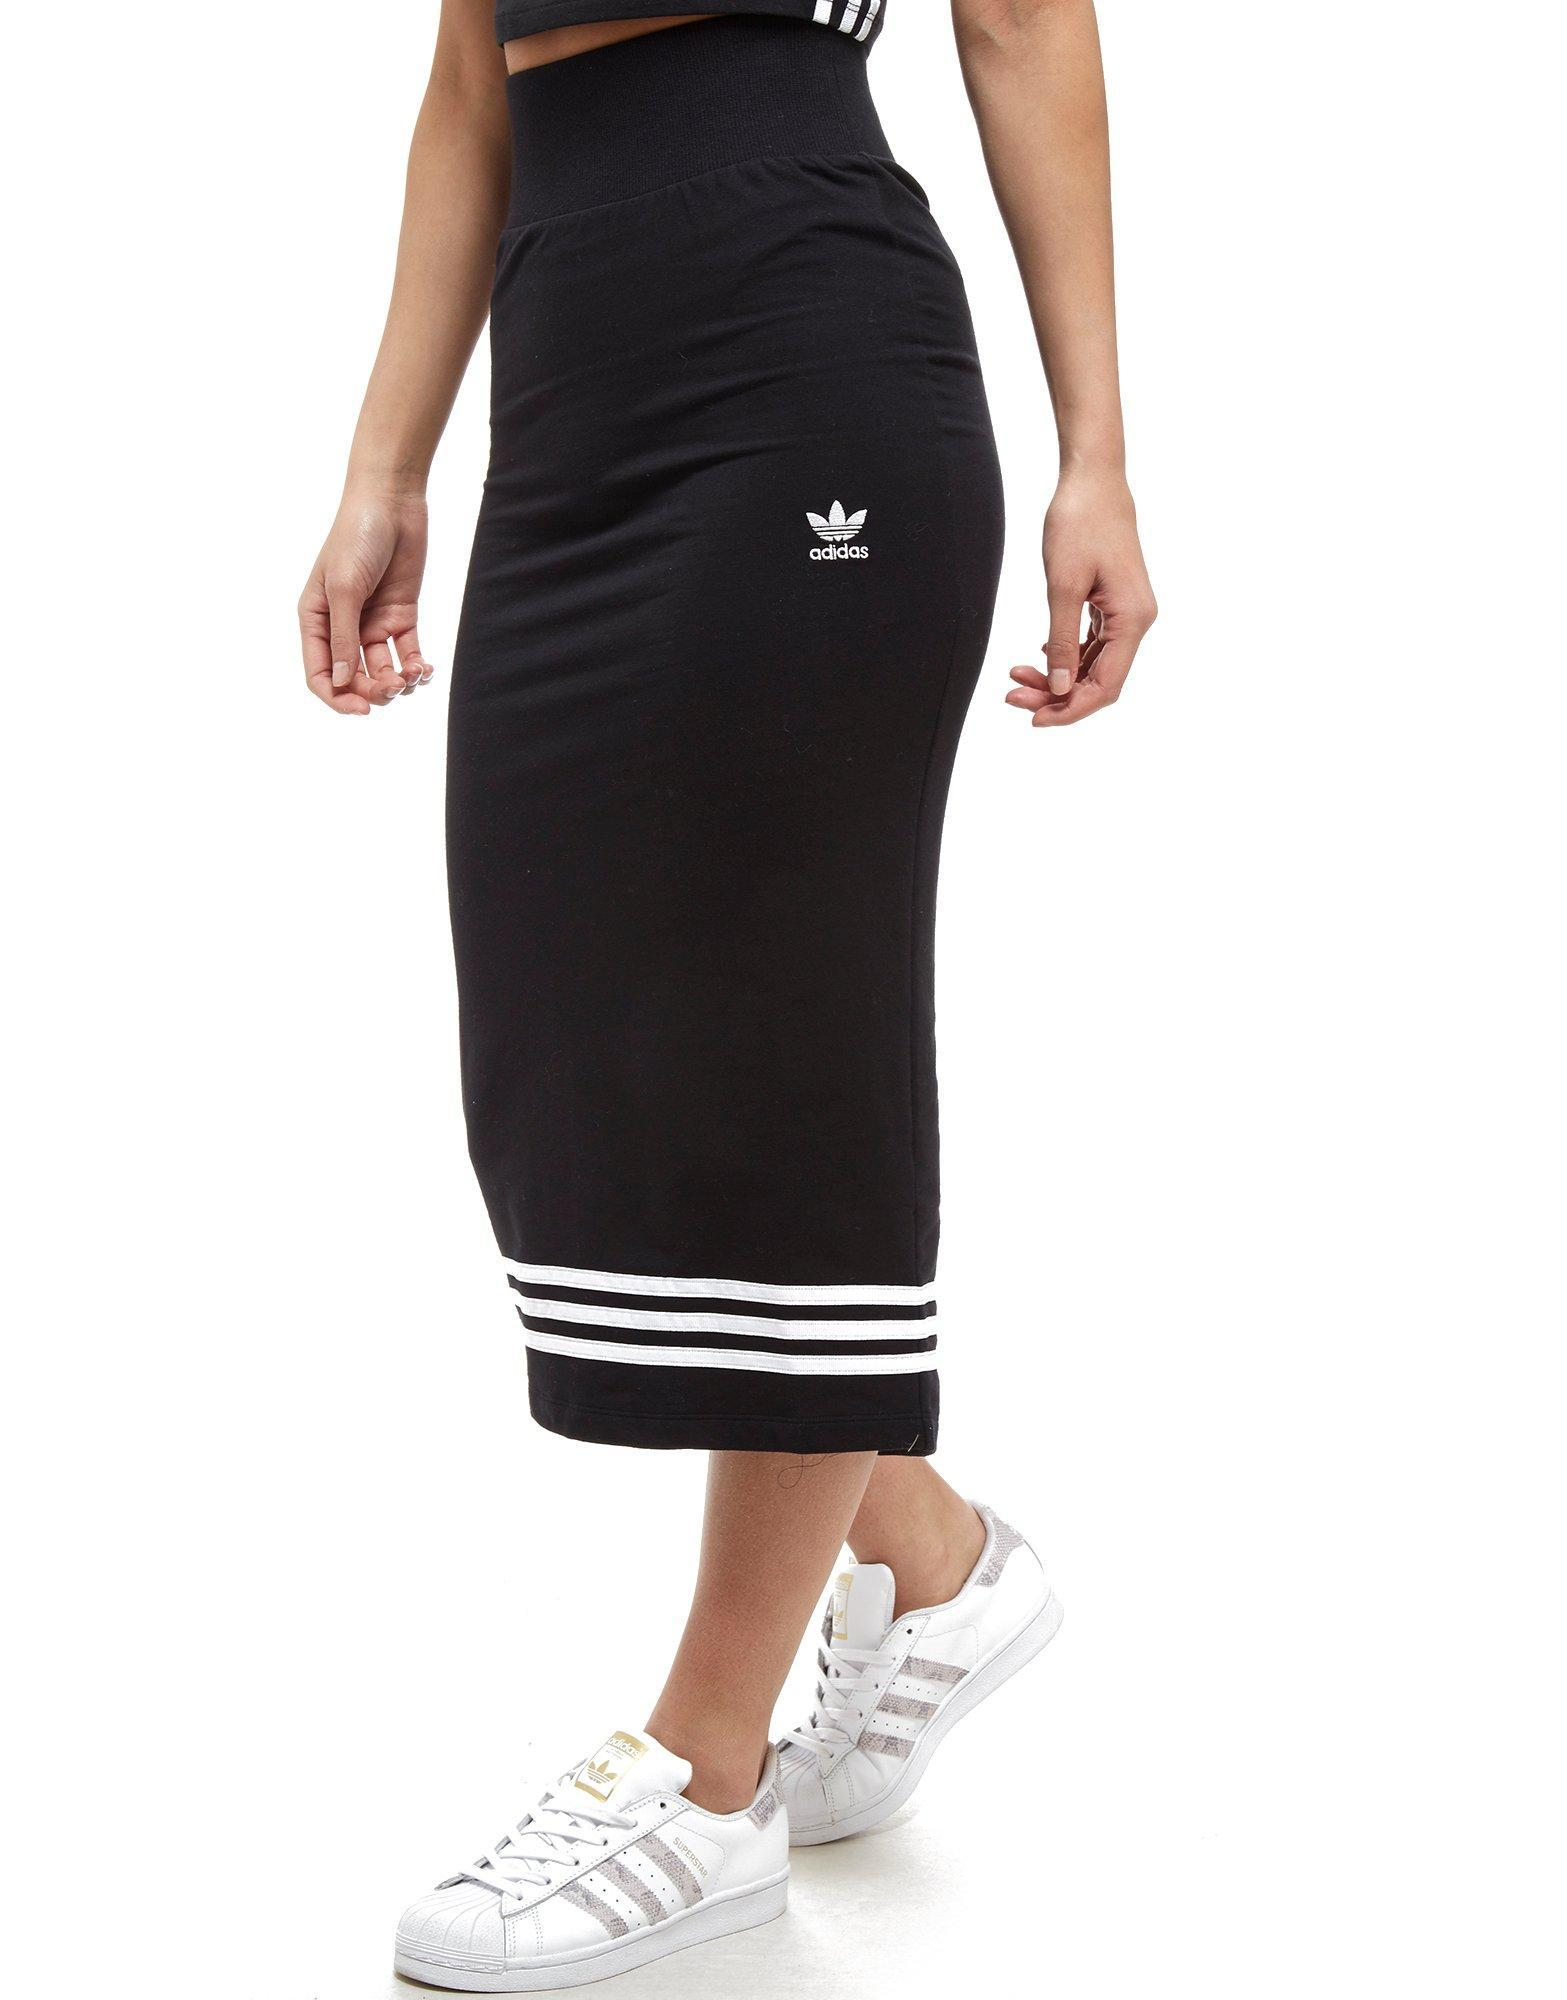 3e66bfc9f9d95 Lyst - adidas Originals 3-stripes Midi Skirt in Black